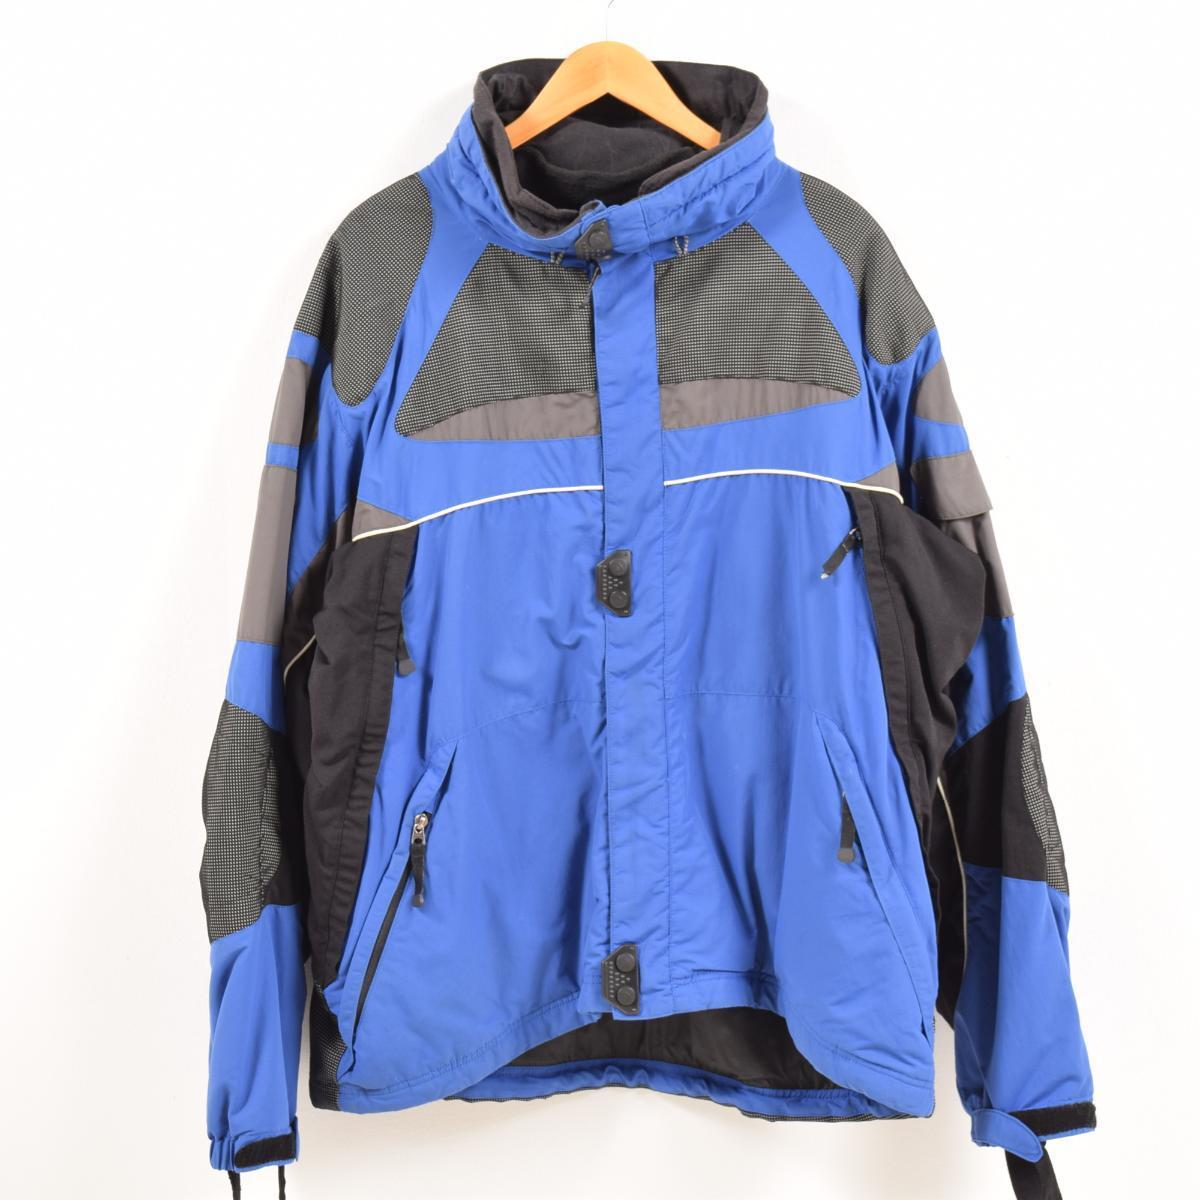 6461bc161 90s the North Face THE NORTH FACE HYVENT DL high vent mountain jacket men  XL /waw7285